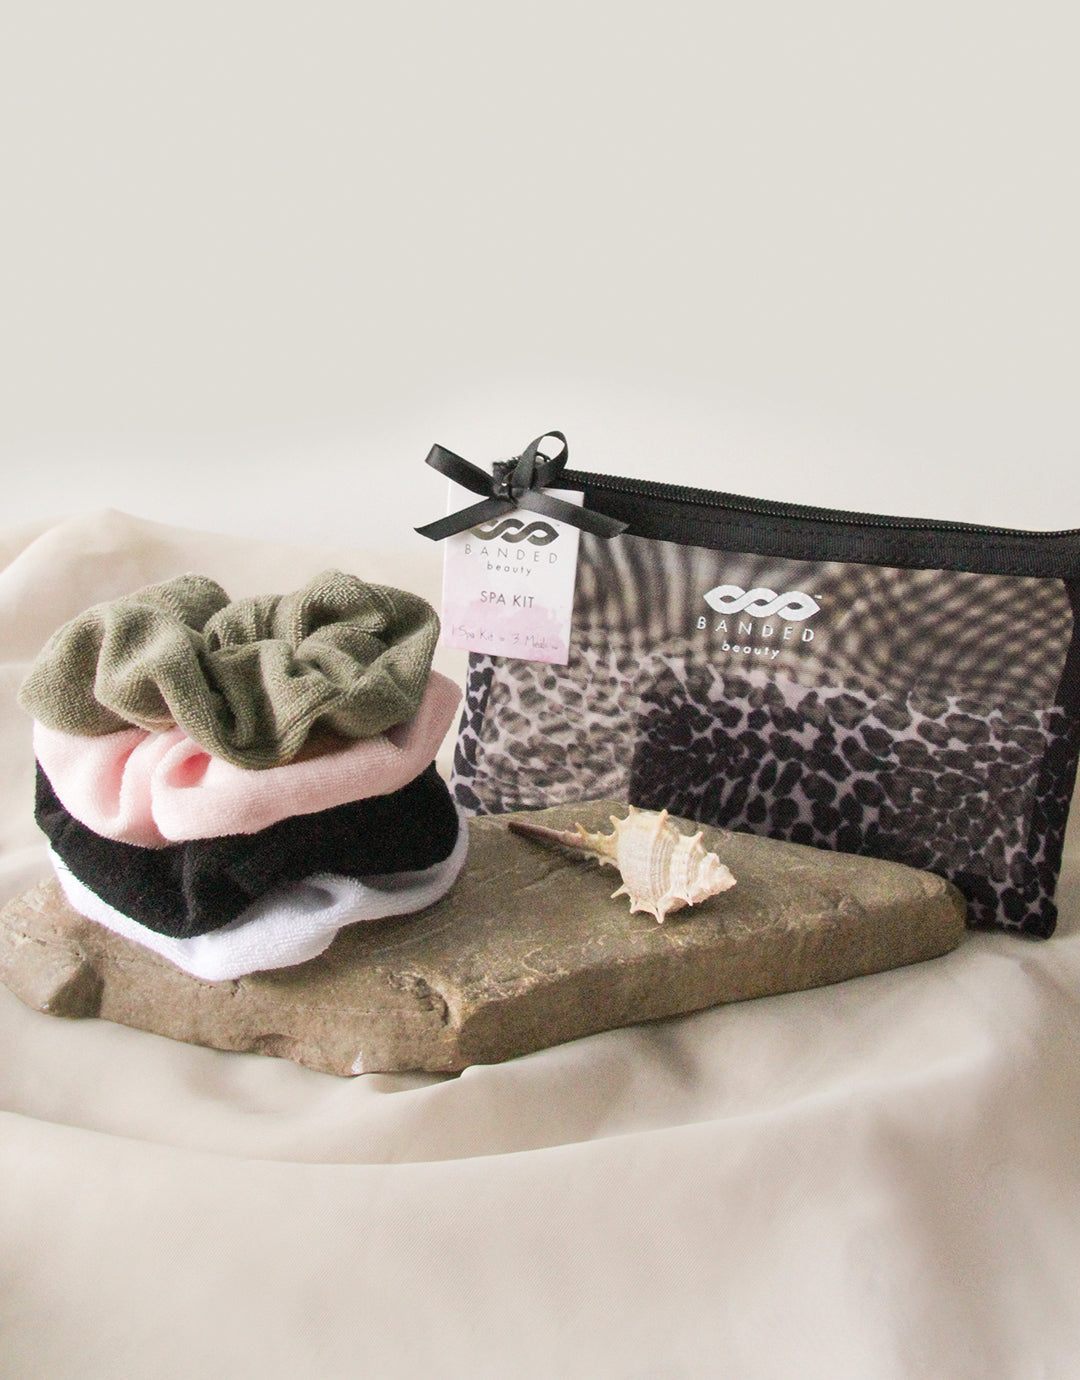 BANDED Women's Premium Hair Accessories + Gift Sets - Leopard Noir - Scrunchie Spa Set